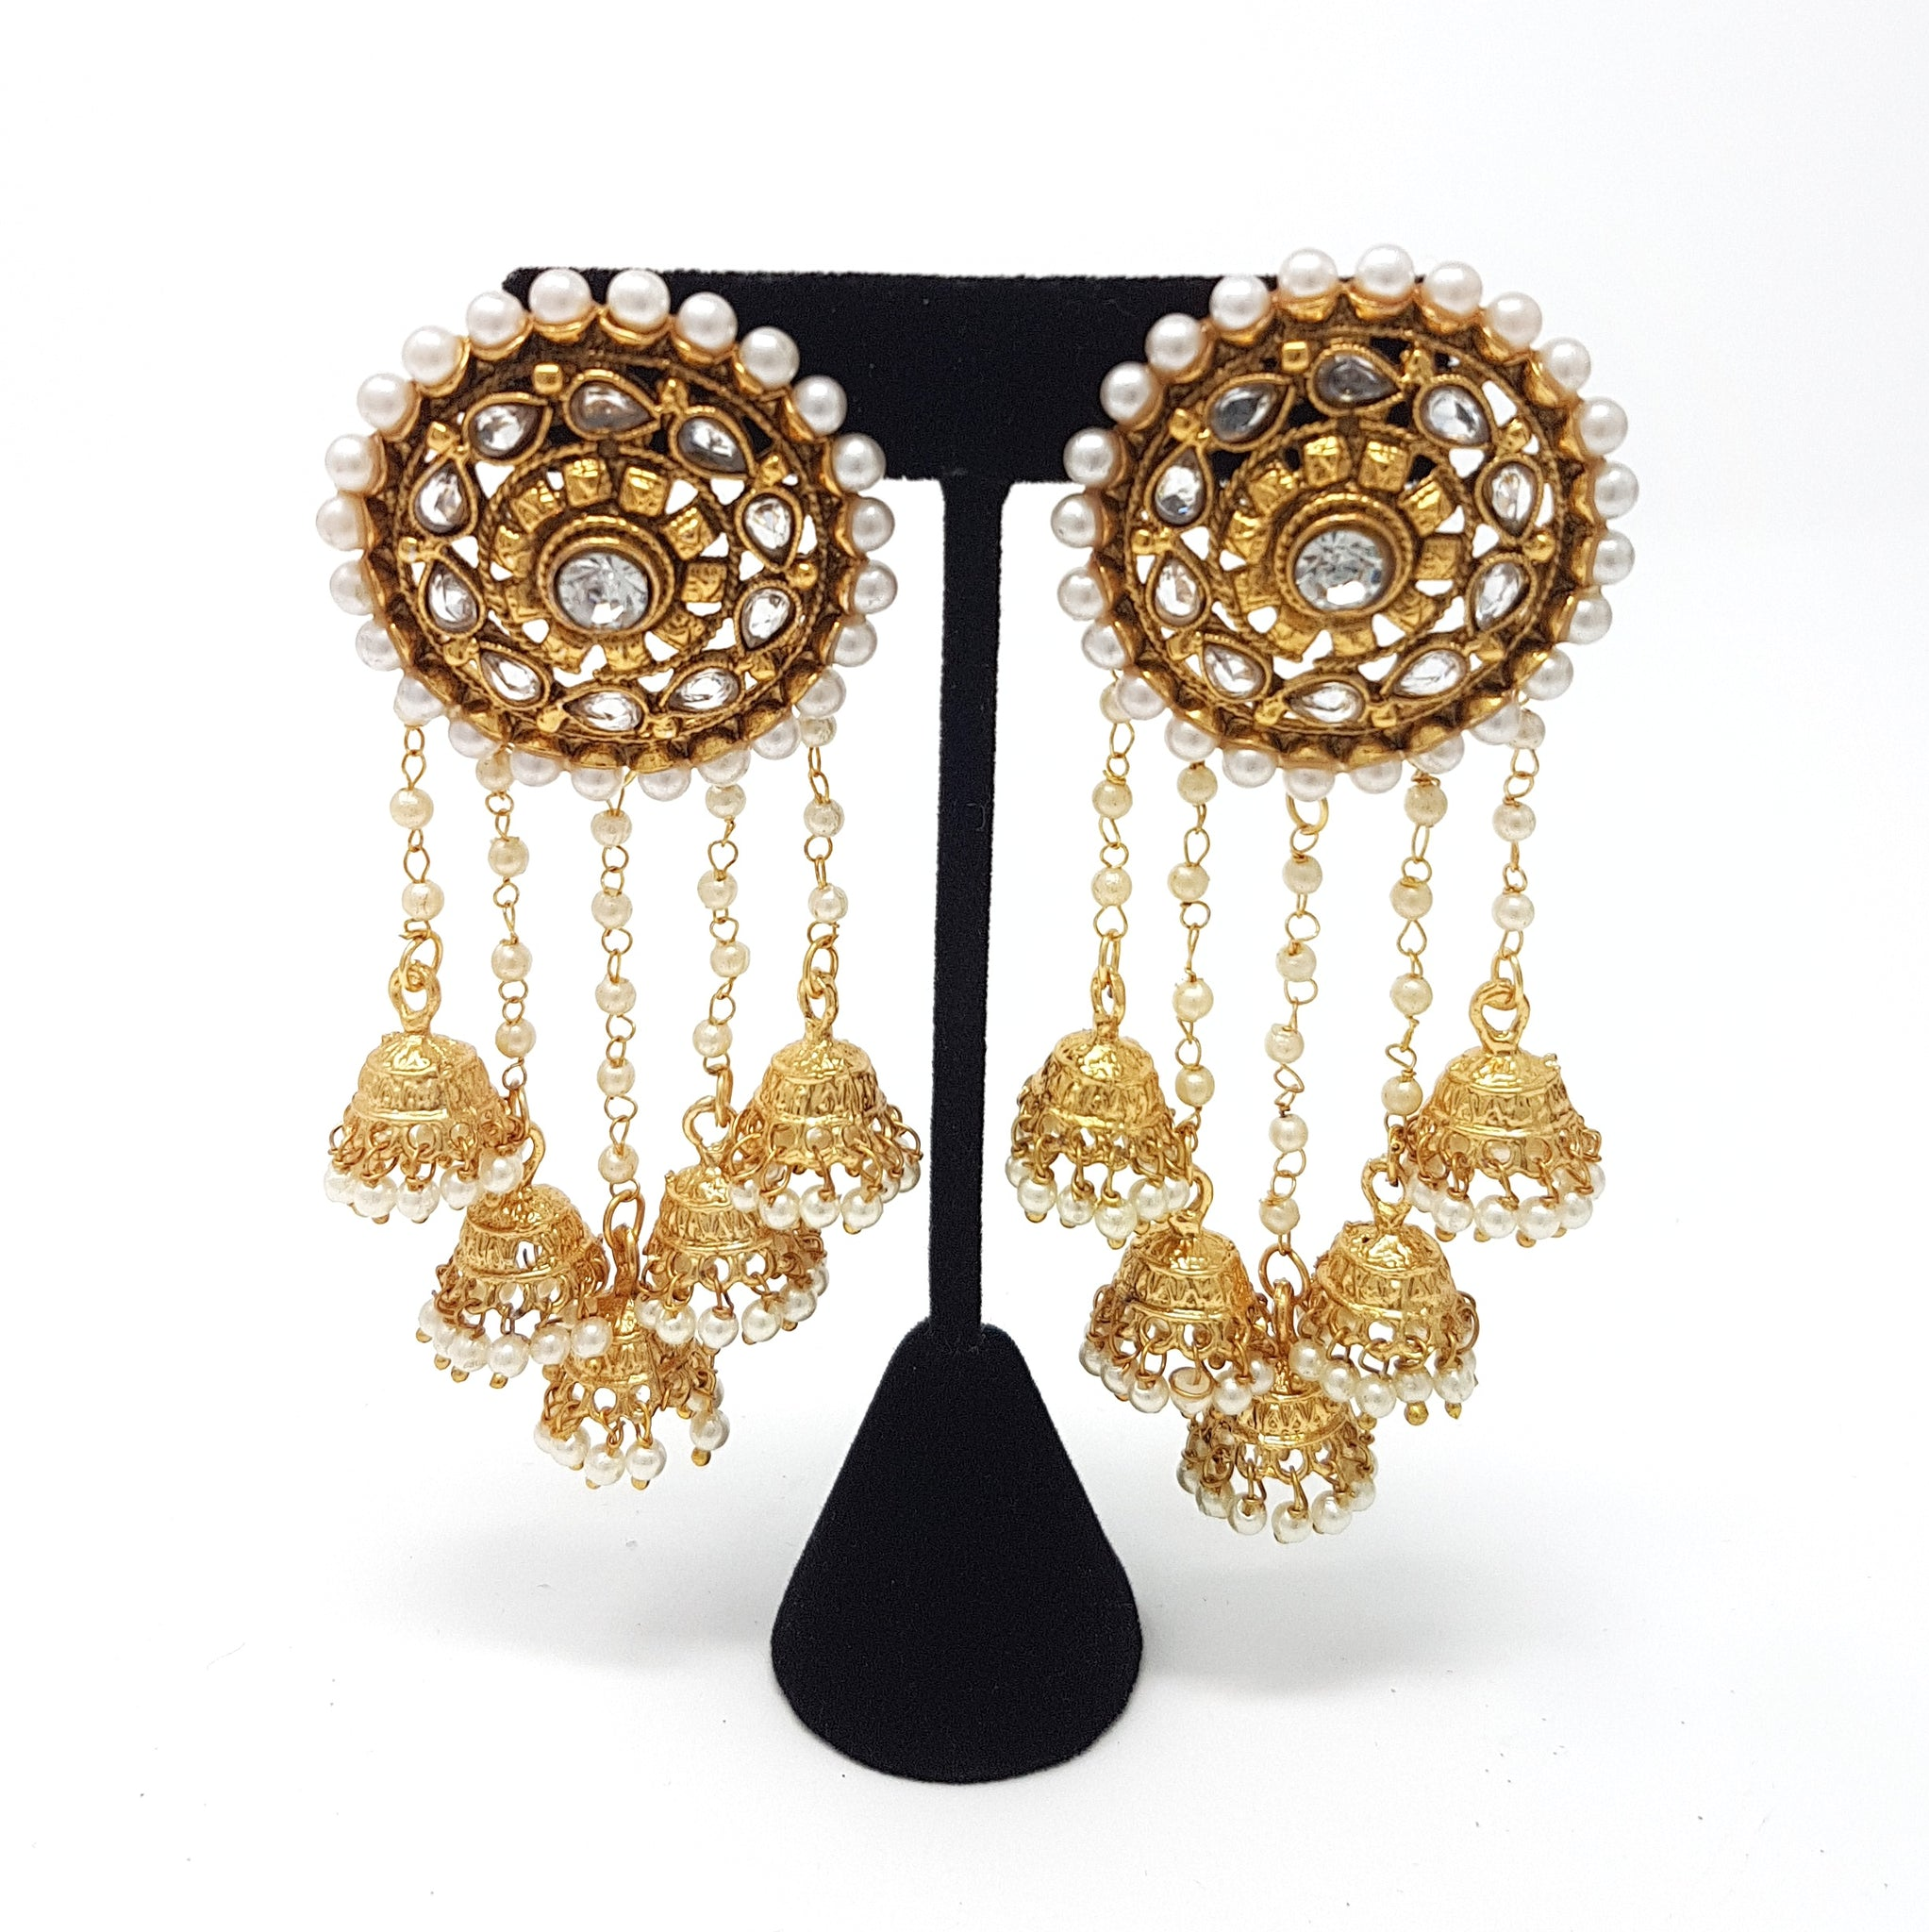 jewellery earrings chandelier products pree brulee img mina